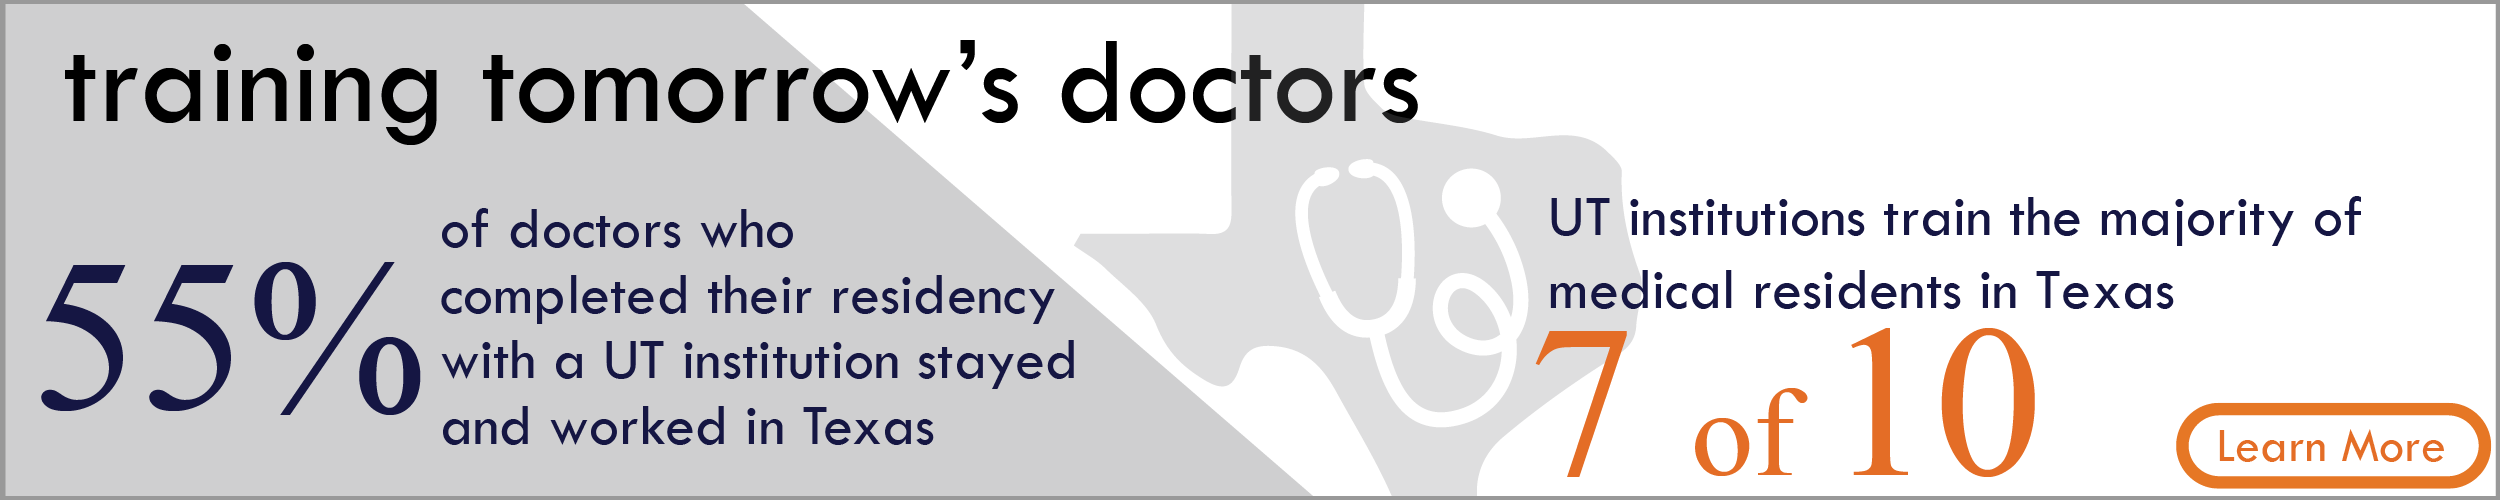 Training Tomorrow's Doctors. 55% of doctors who complete their residency with a UT institution stayed and worked in Texas. UT institutions train the majority of medical residents in Texas- 7 of 10. Learn more.